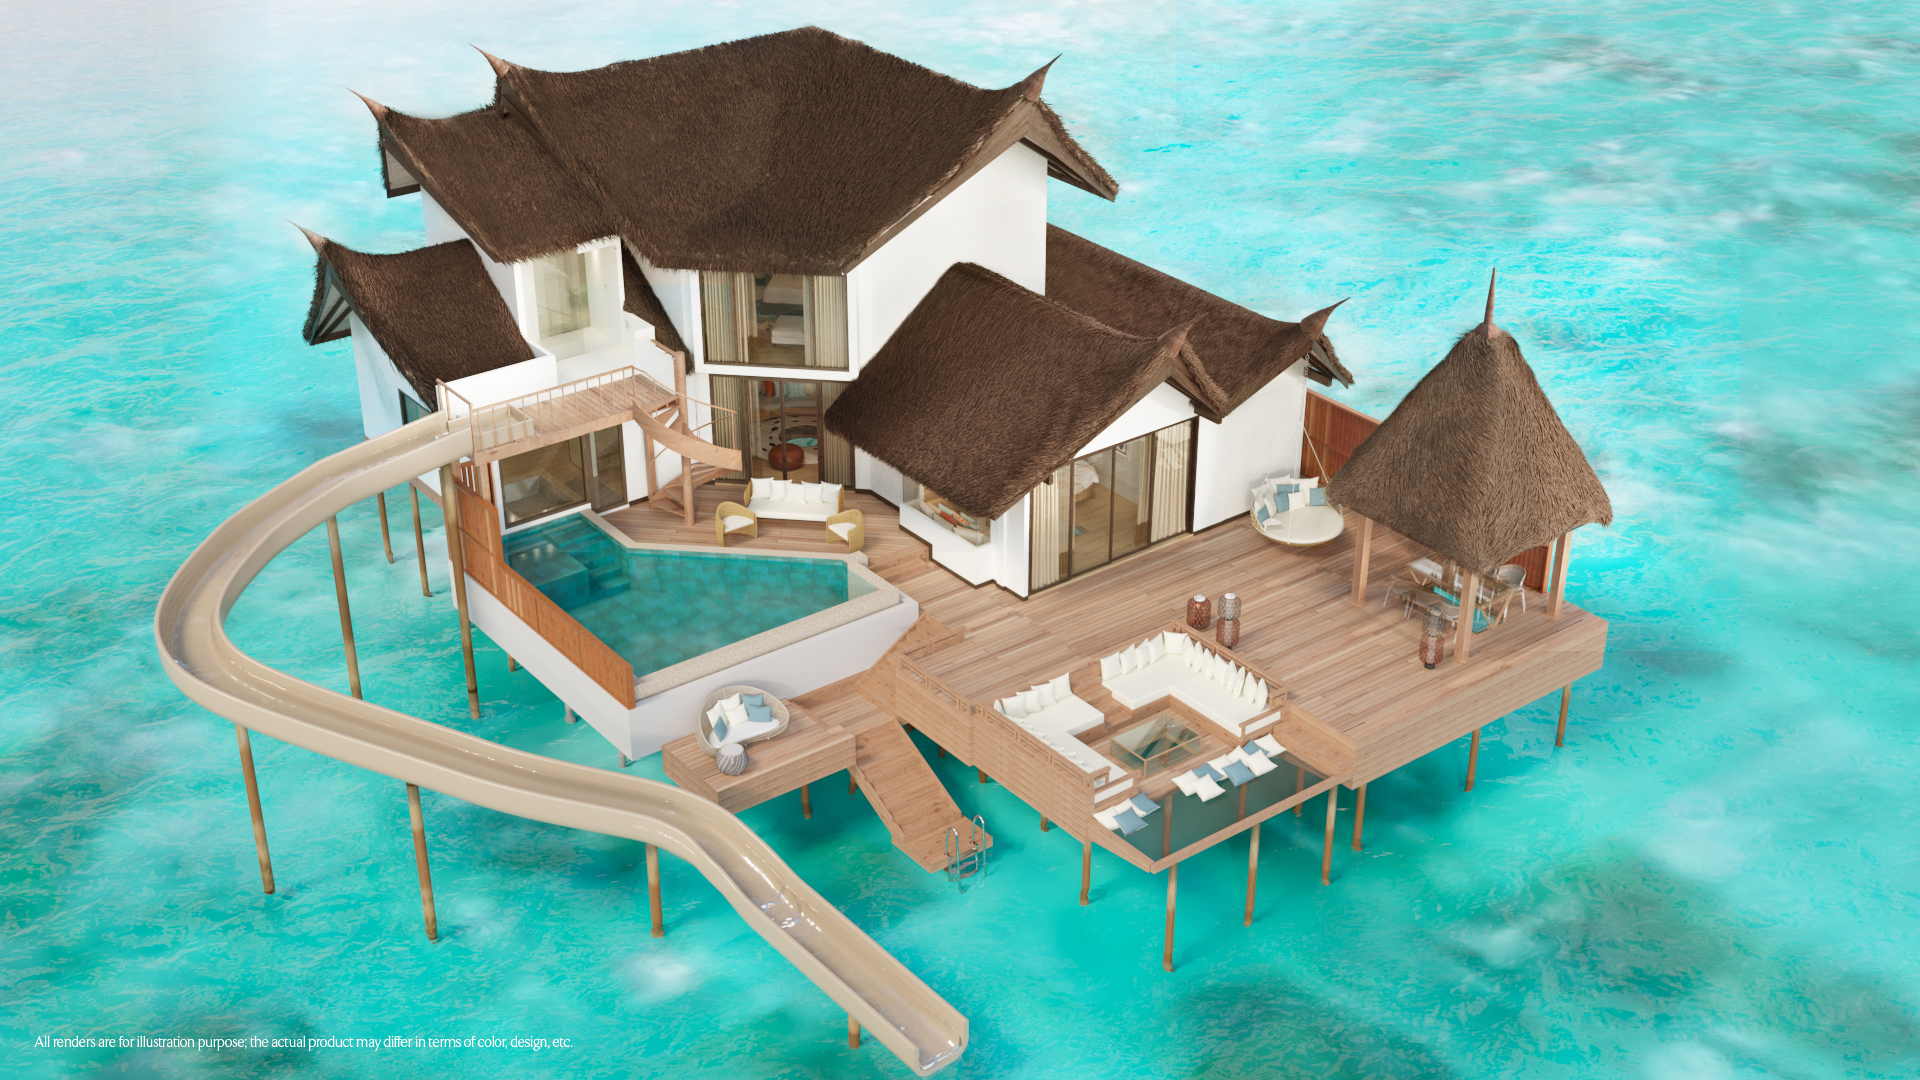 Private Ocean Retreat with Slide - Aerial View - illustration